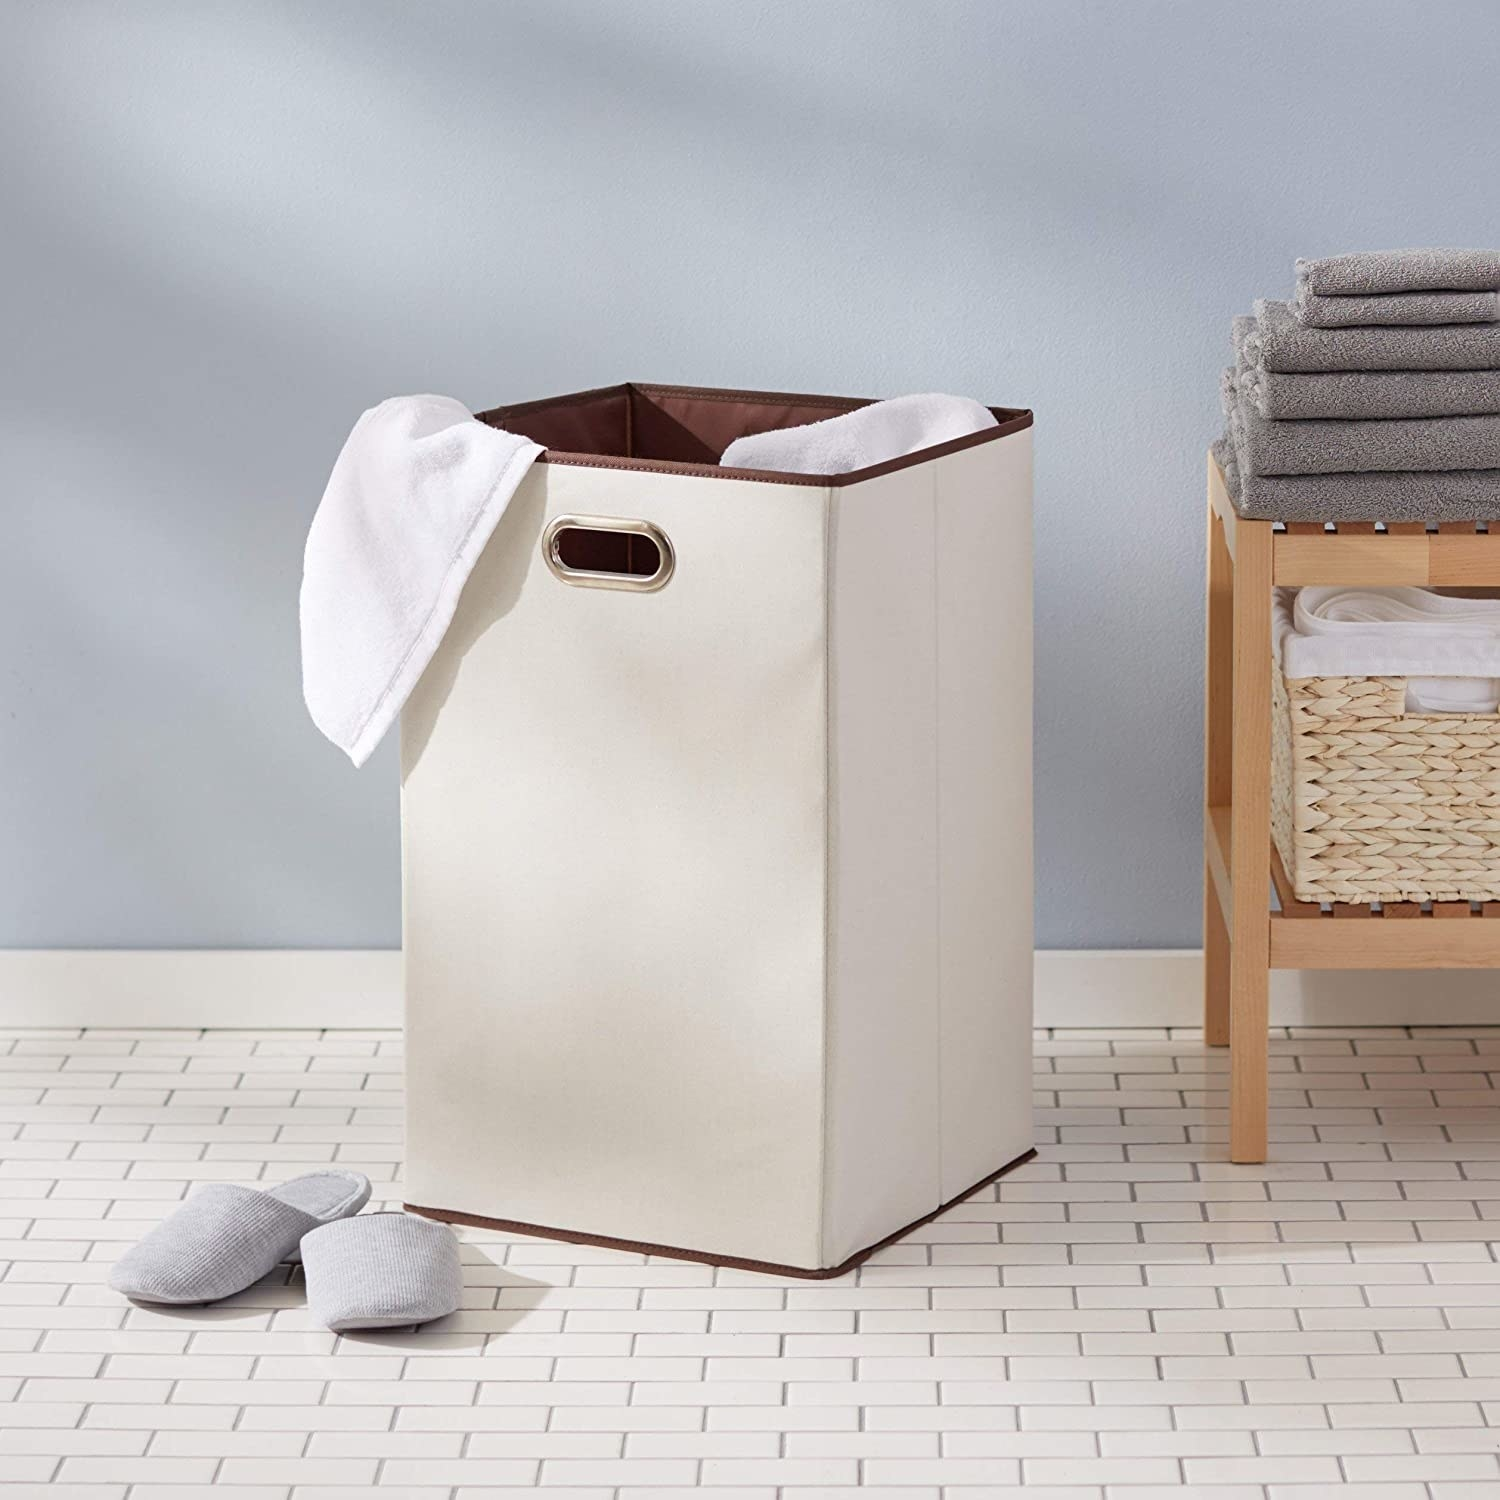 A foldable laundry hamper with a towel in it next to a pair of shoes and a wicker basket